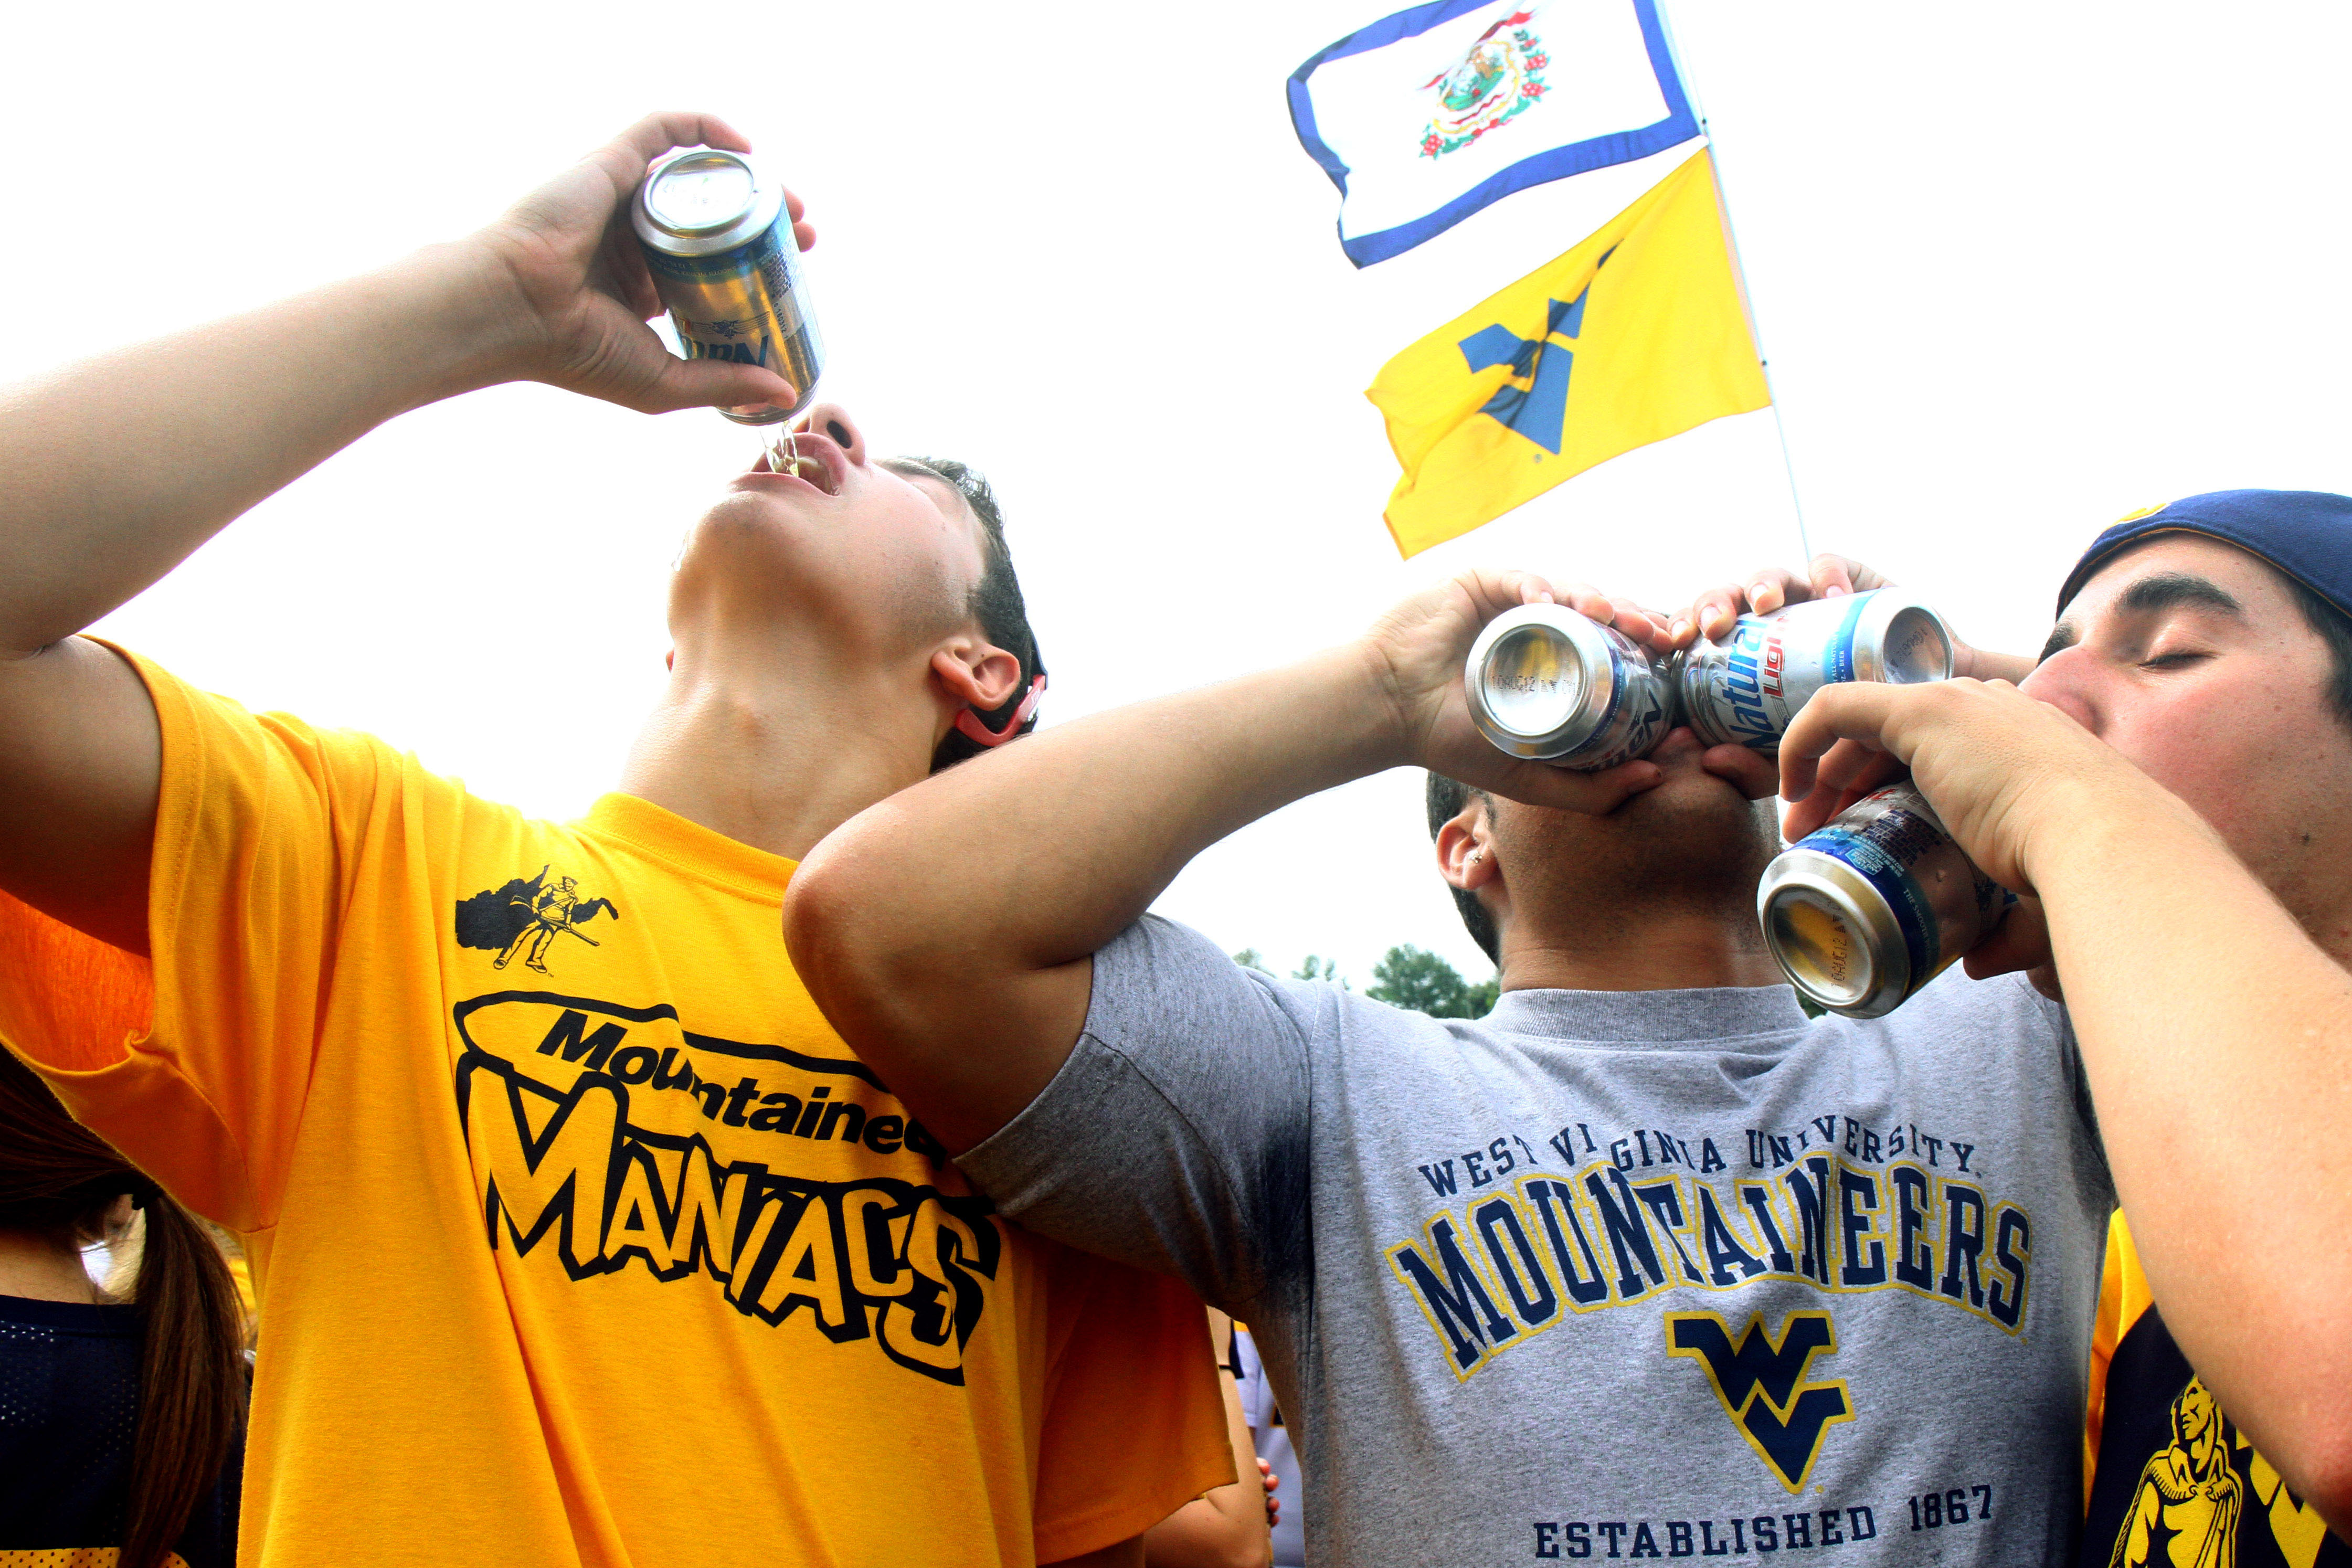 Drinking Alcohol At College Football Games